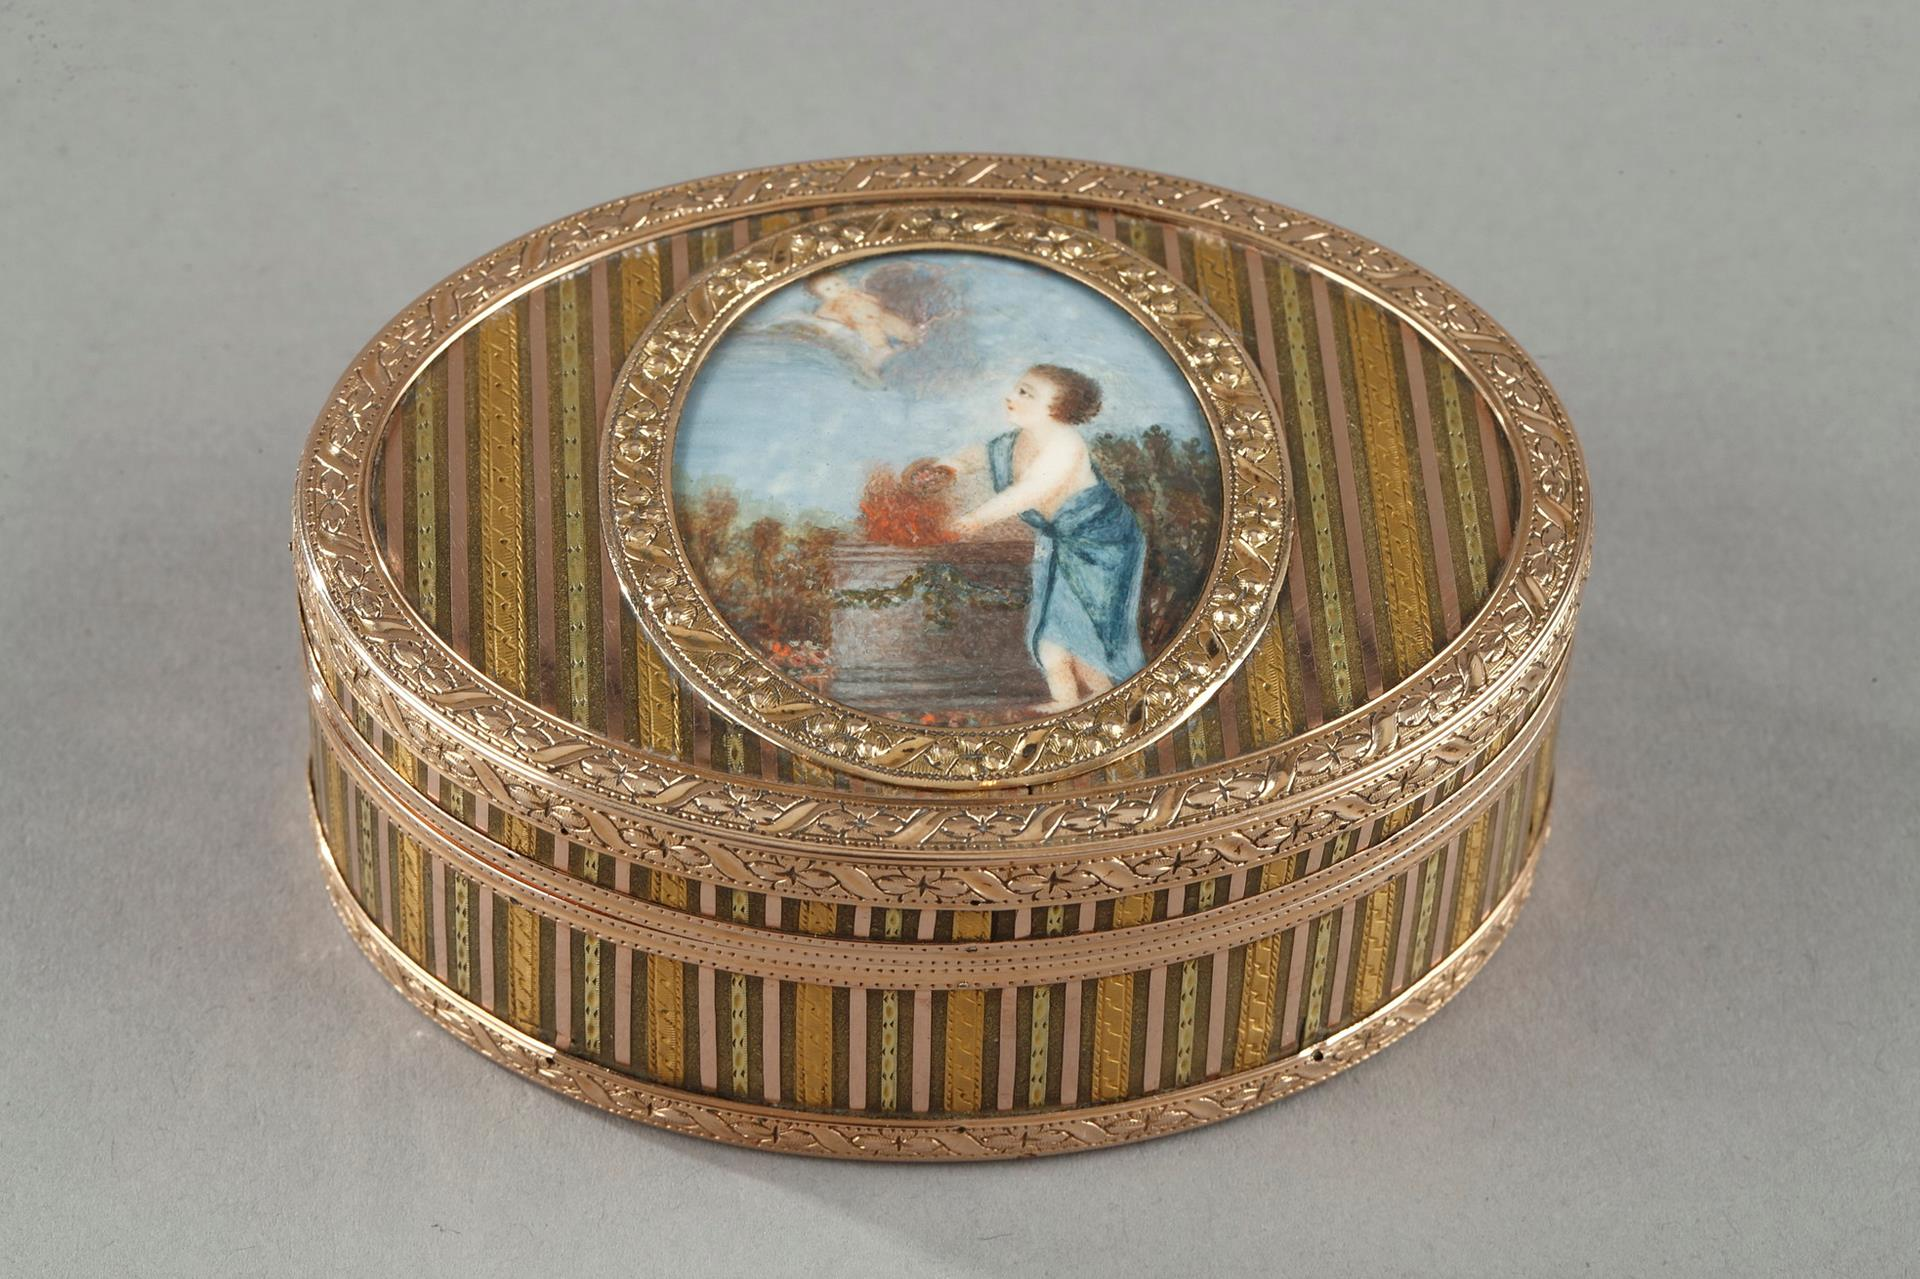 Louis XVI gold snuff box with miniature on ivory. Circa 1770.